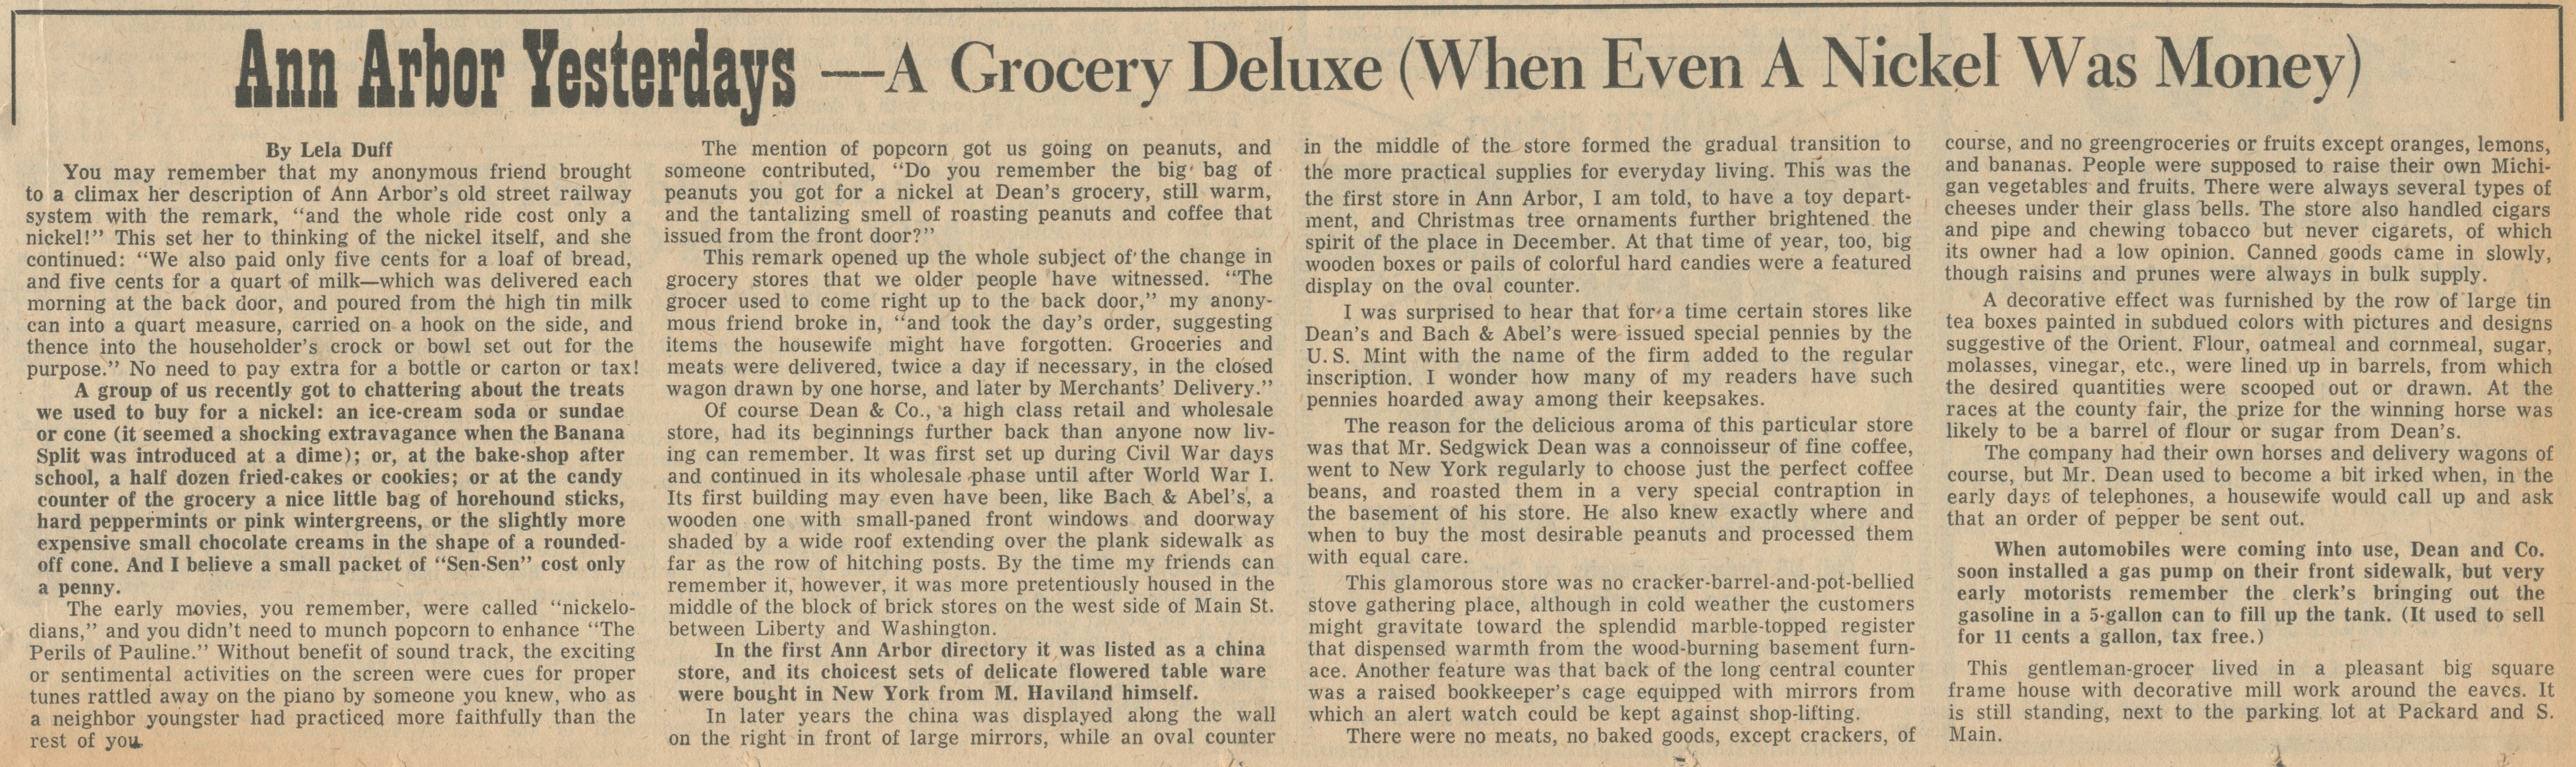 Ann Arbor Yesterdays ~ A Grocery Deluxe (When Even A Nickel Was Money) image